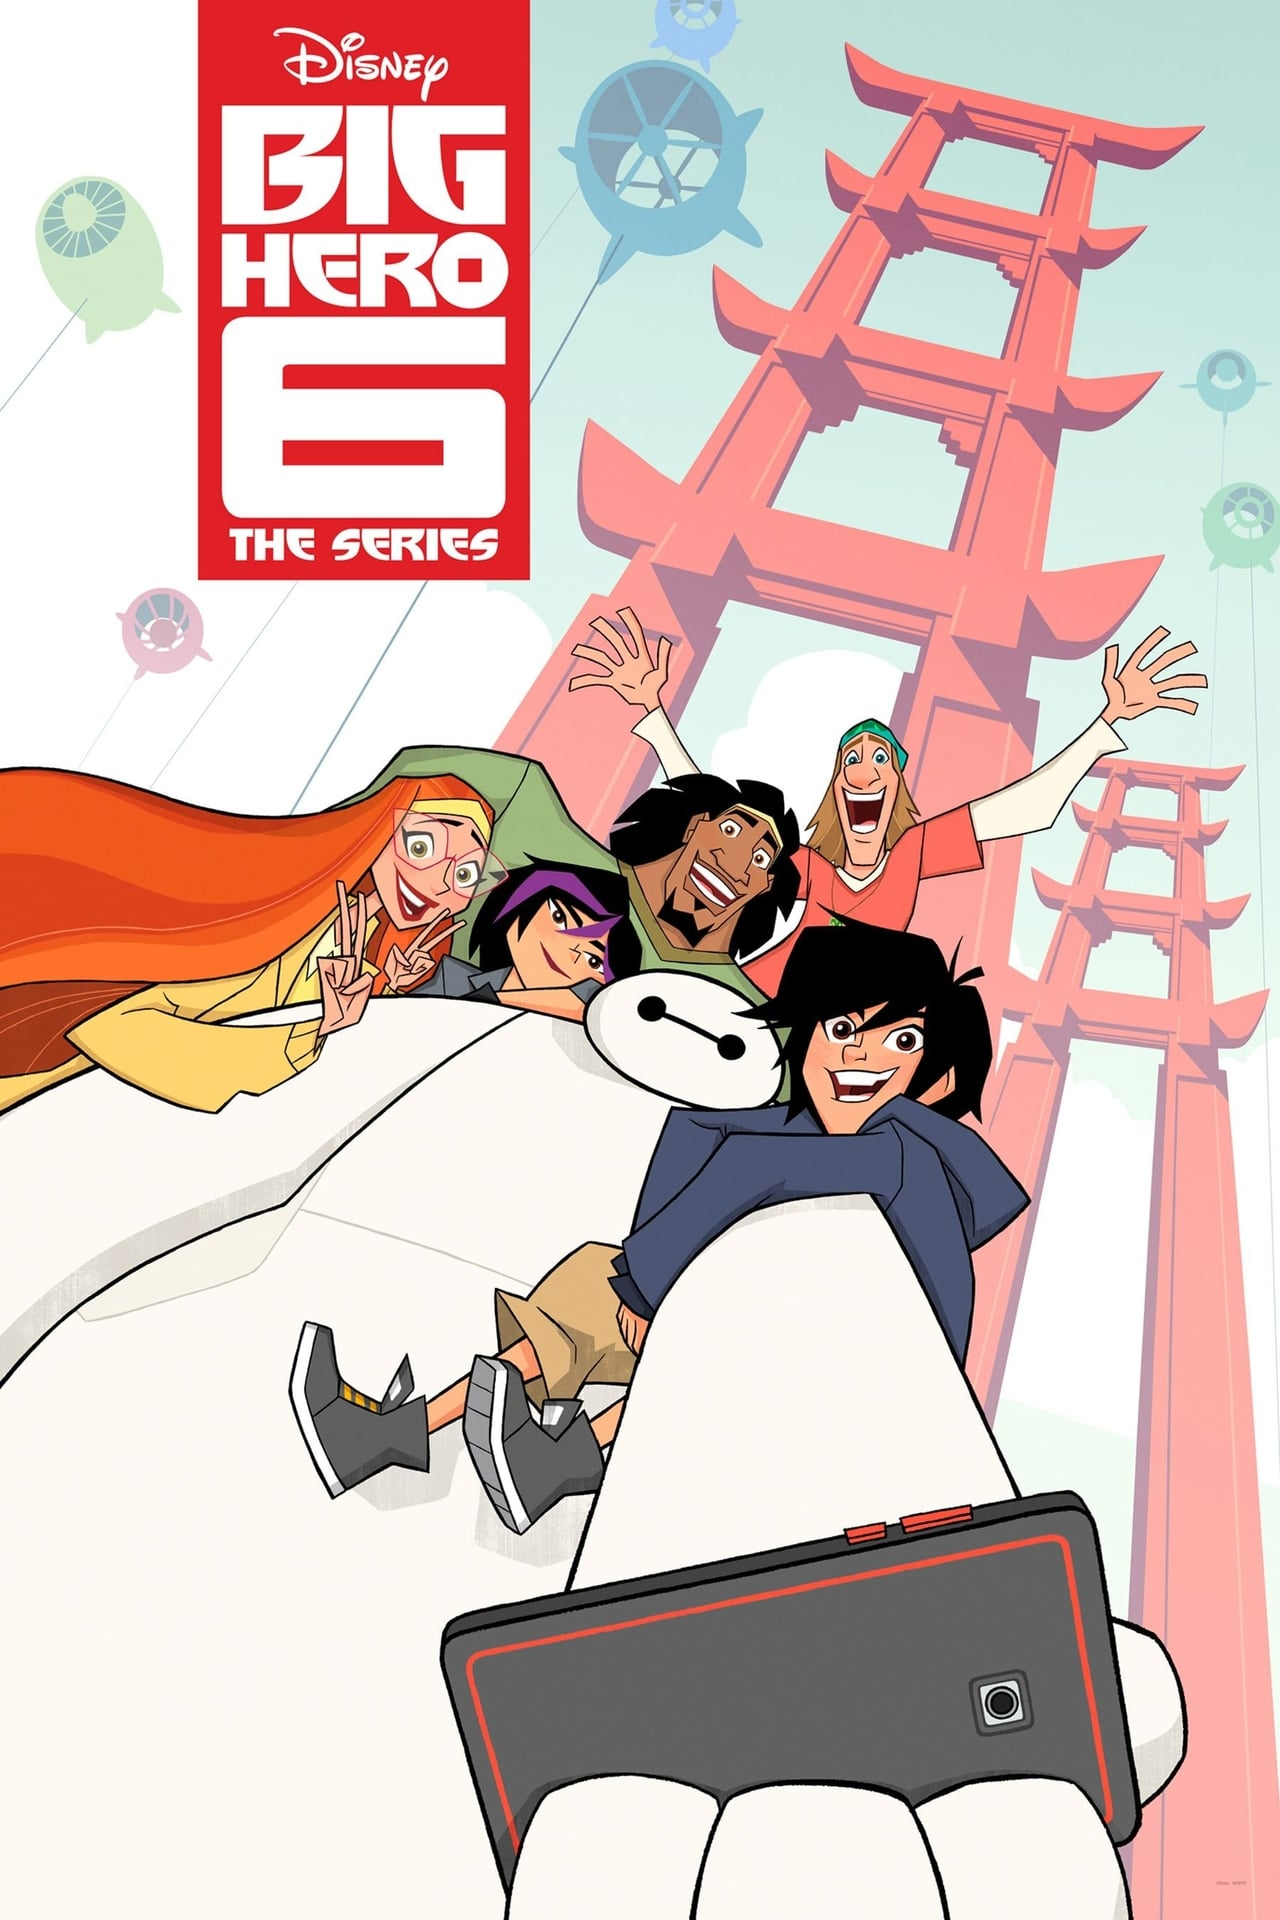 Putlocker Big Hero 6 The Series Season 1 (2017)